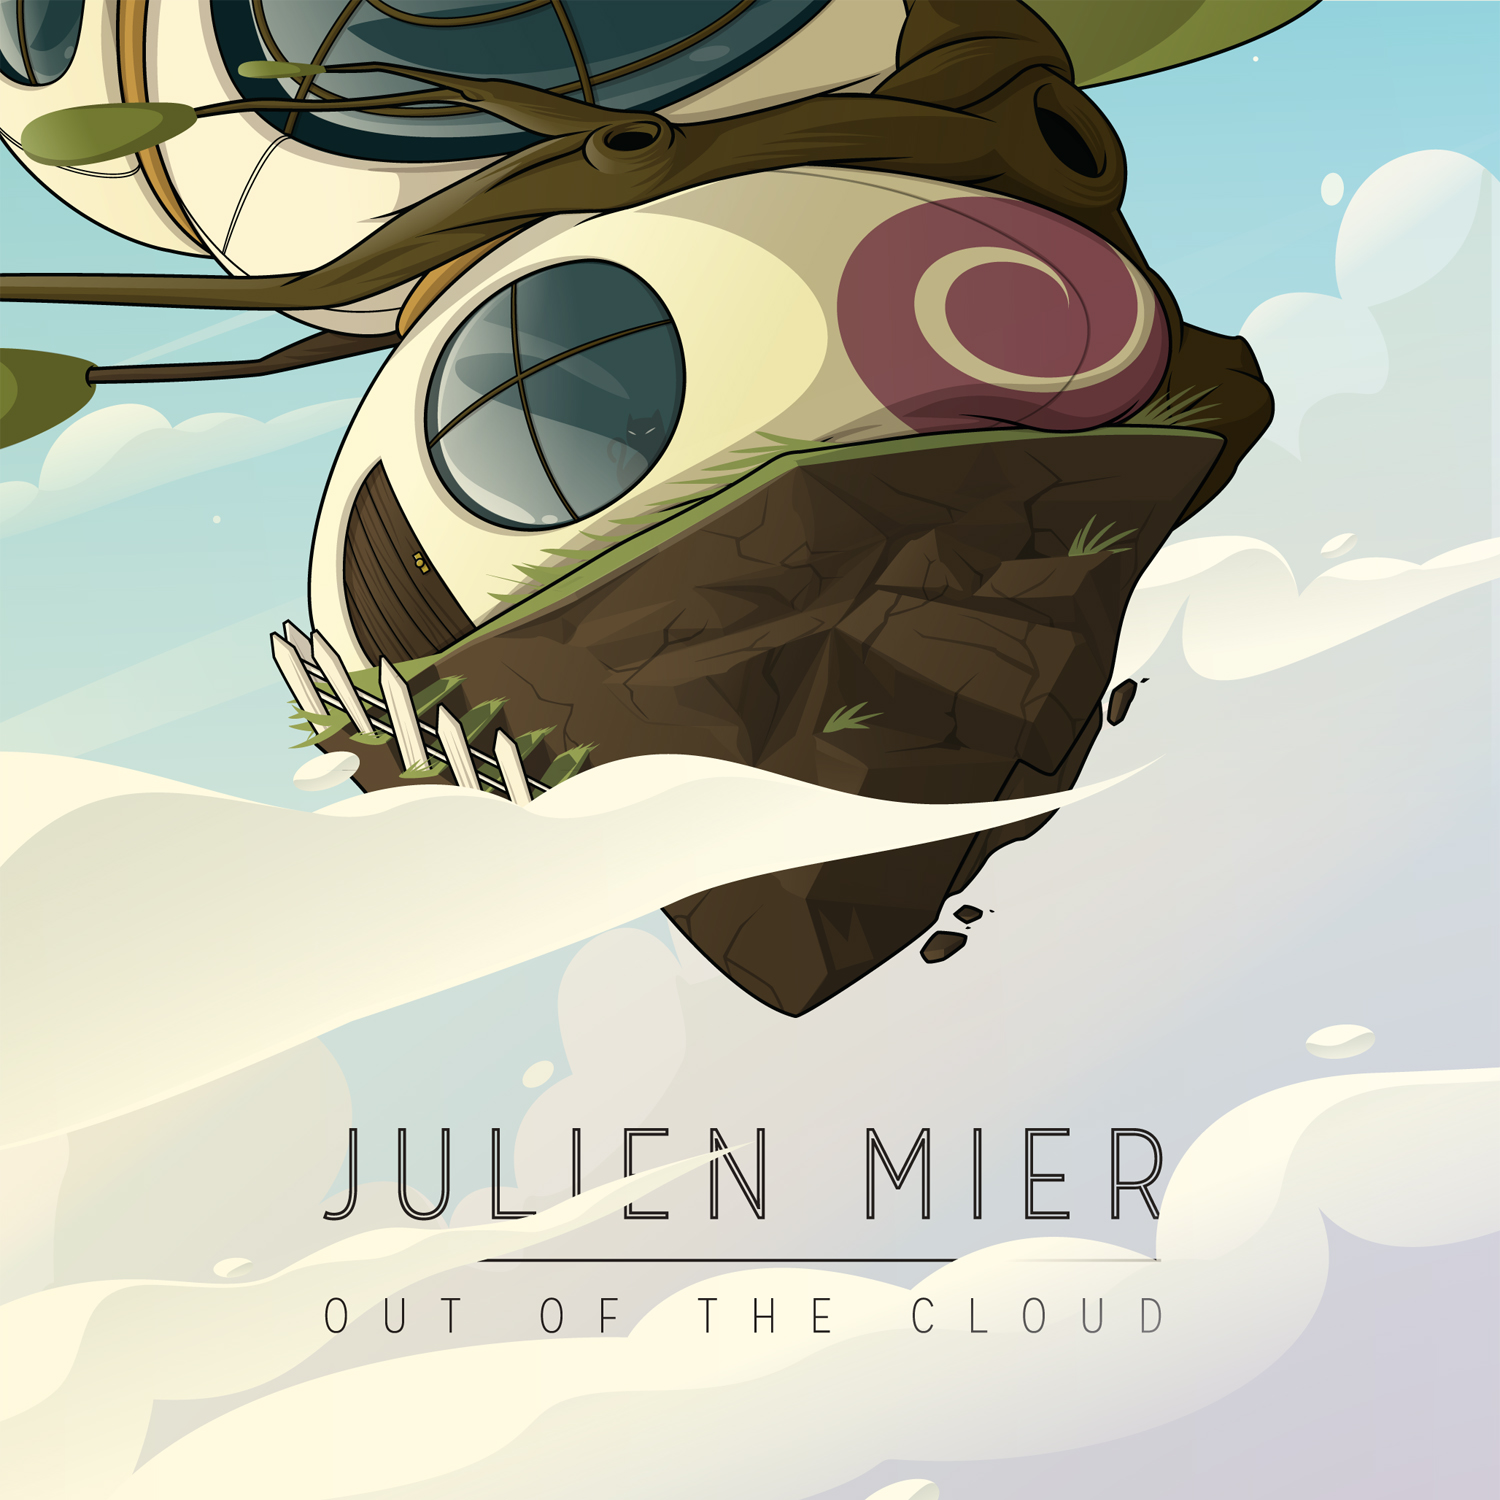 JM_OutOfTheClouds_EXP_RGB